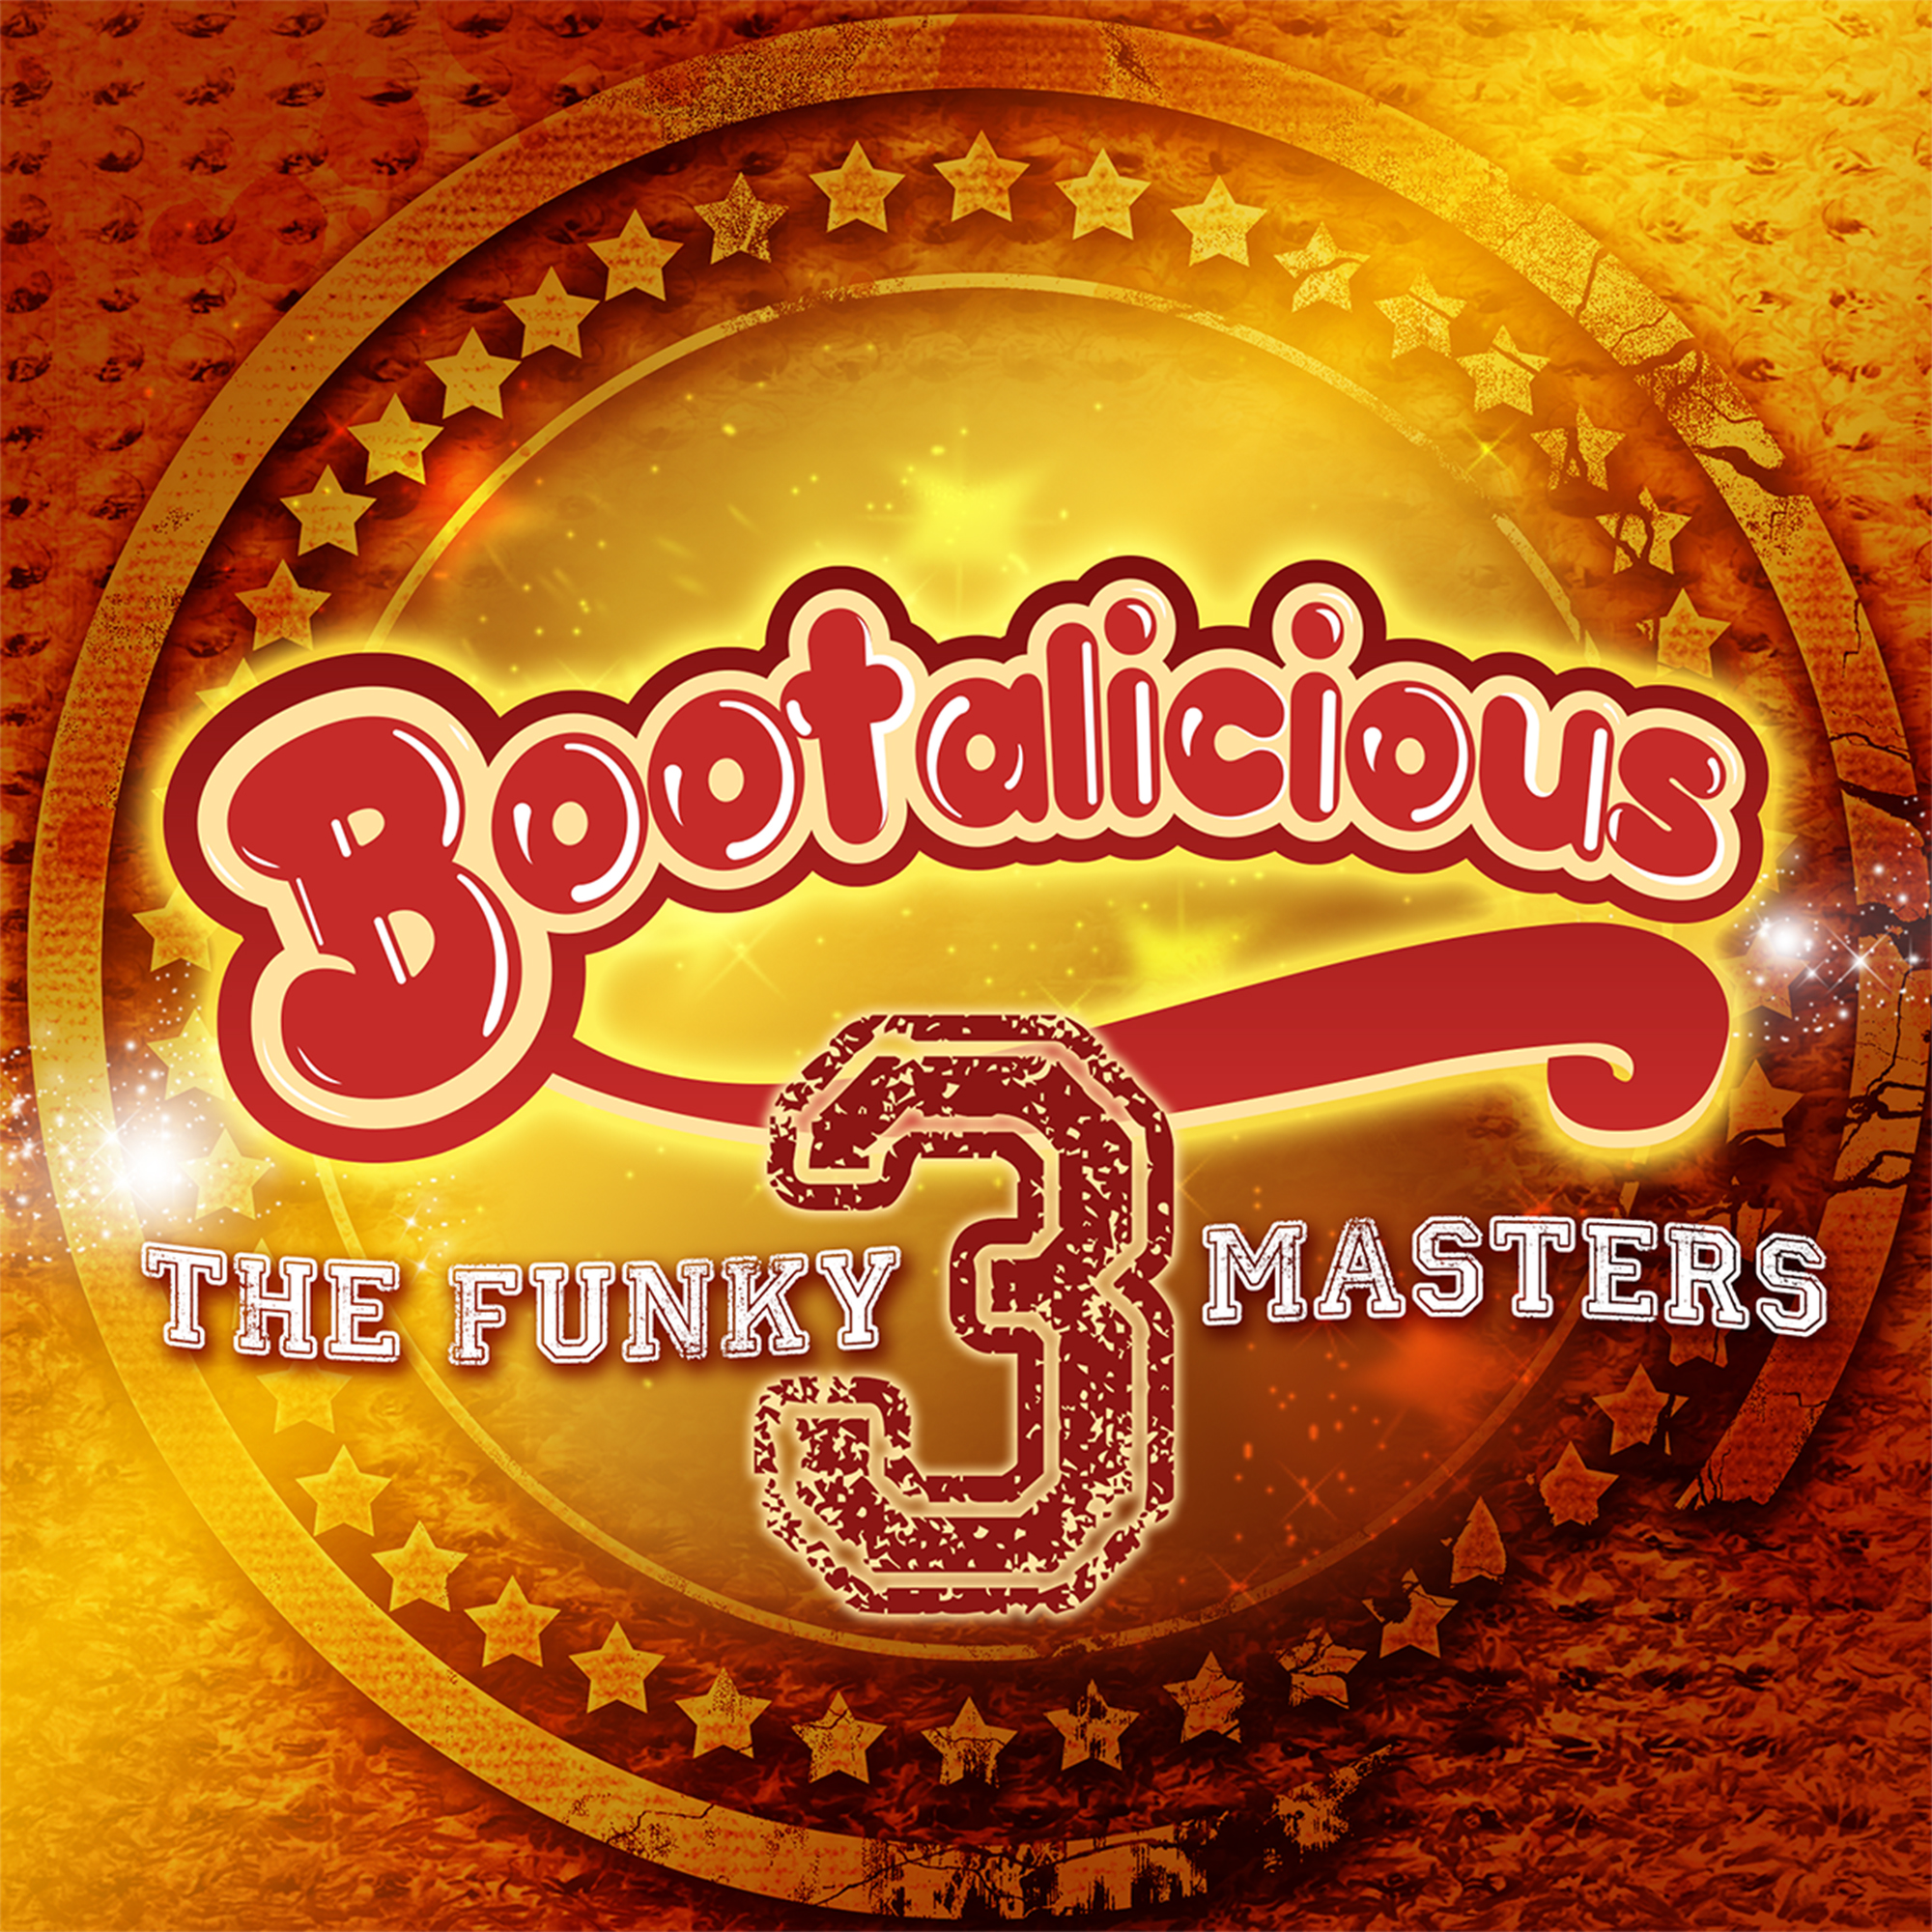 Bootalicious The Funky Masters Blend Your Music Seventies